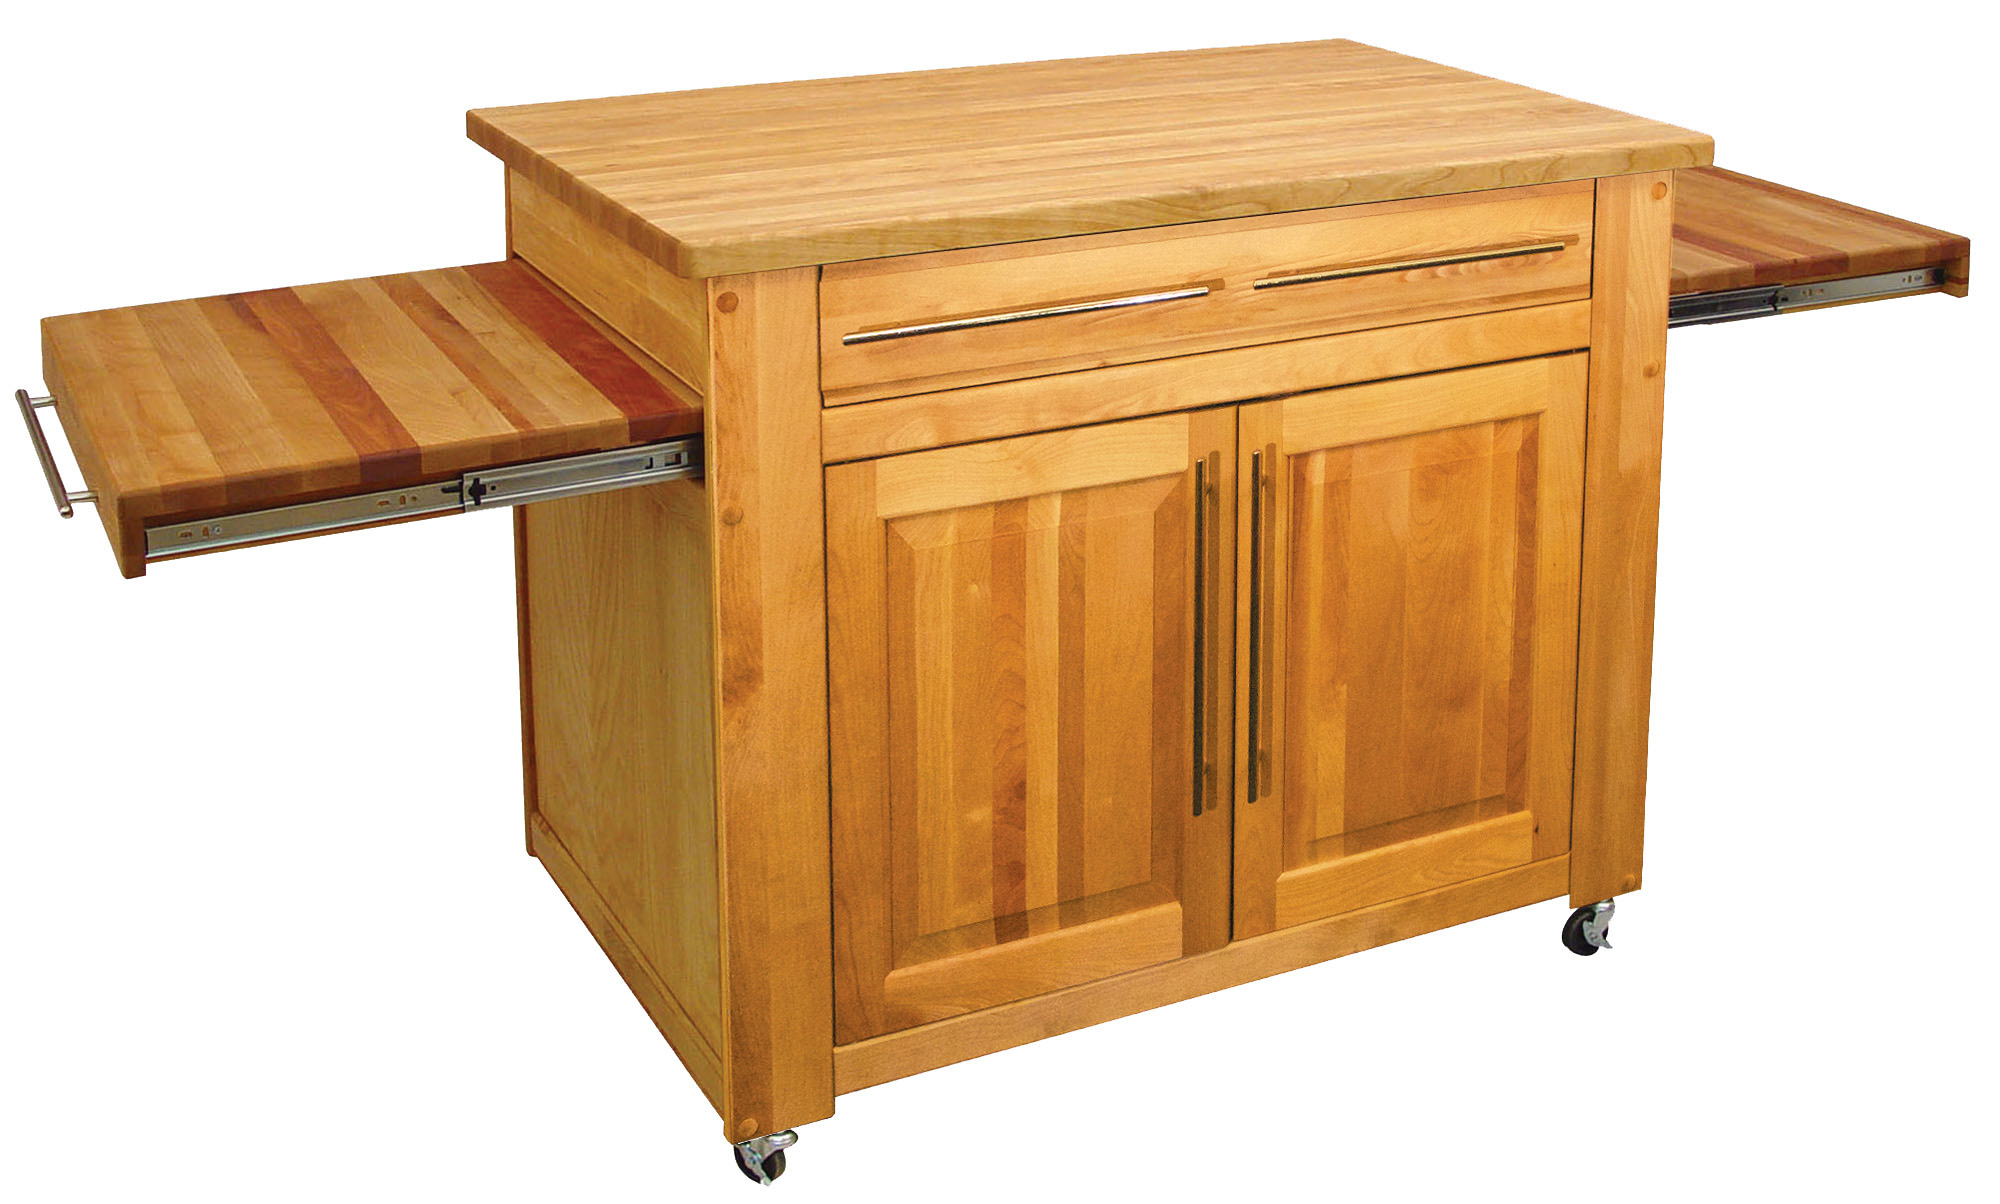 Cheap Kitchen Islands For Sale | Catskill Kitchen Islands Carts Work Stations